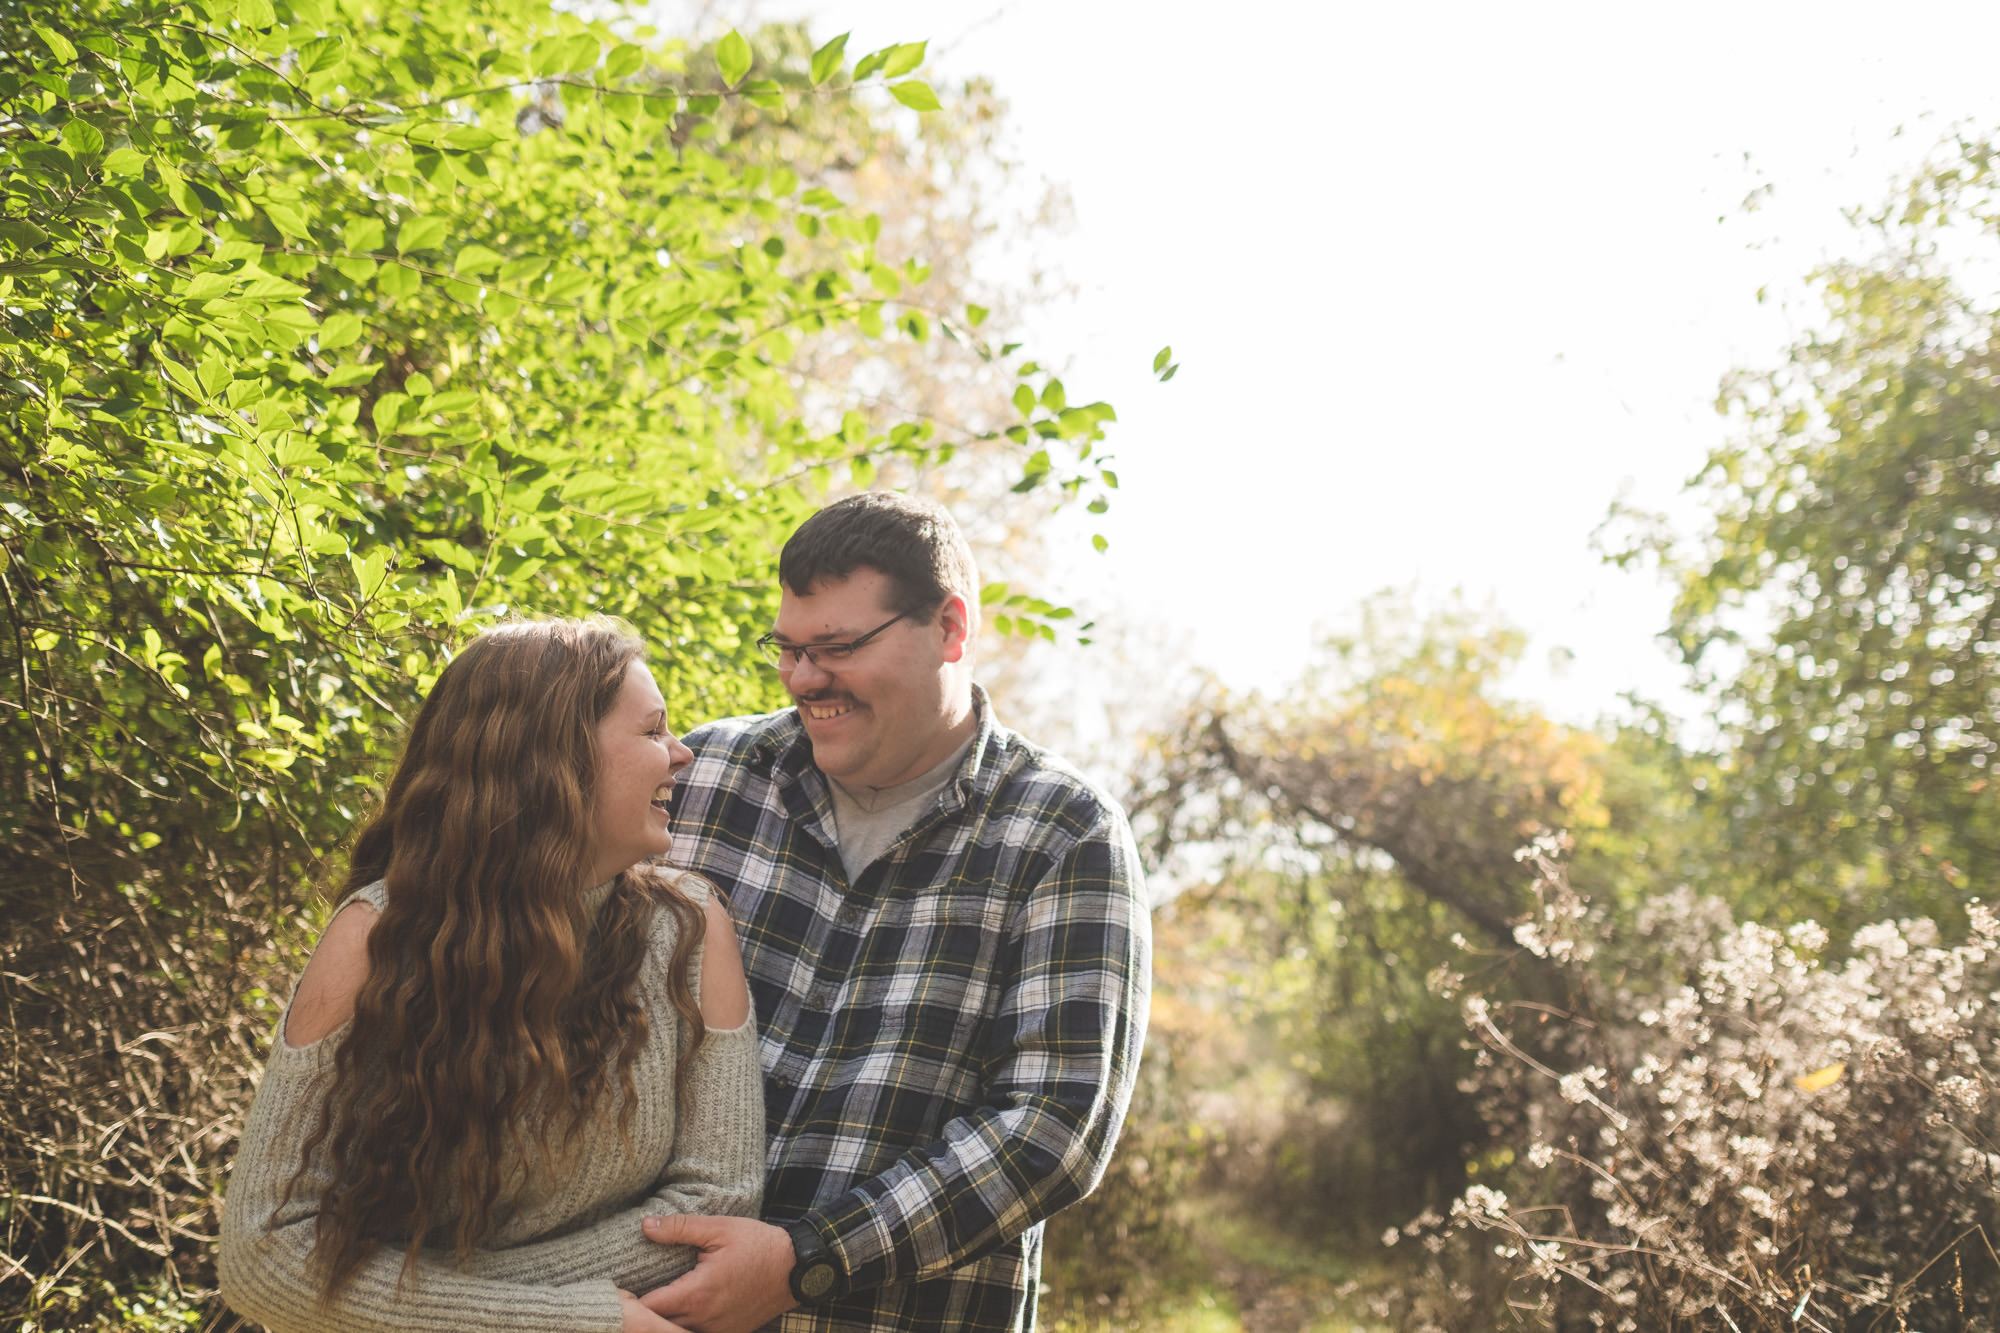 engaged-couple-laughing-together-on-nature-trail-in-fall